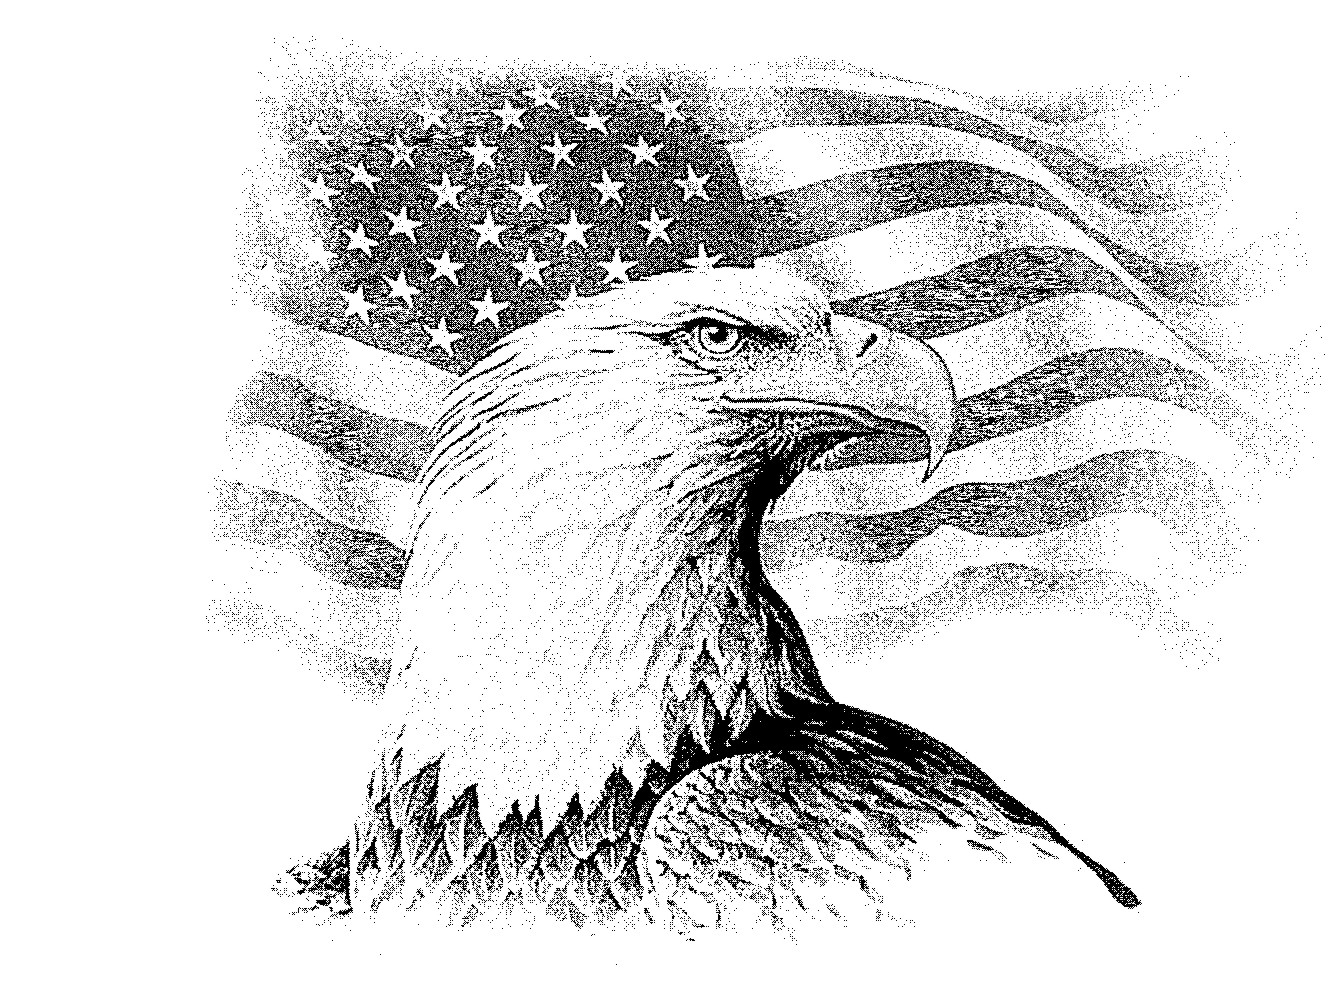 1344x1008 Eagle Drawings We Have Hundred Of Other Images From Which